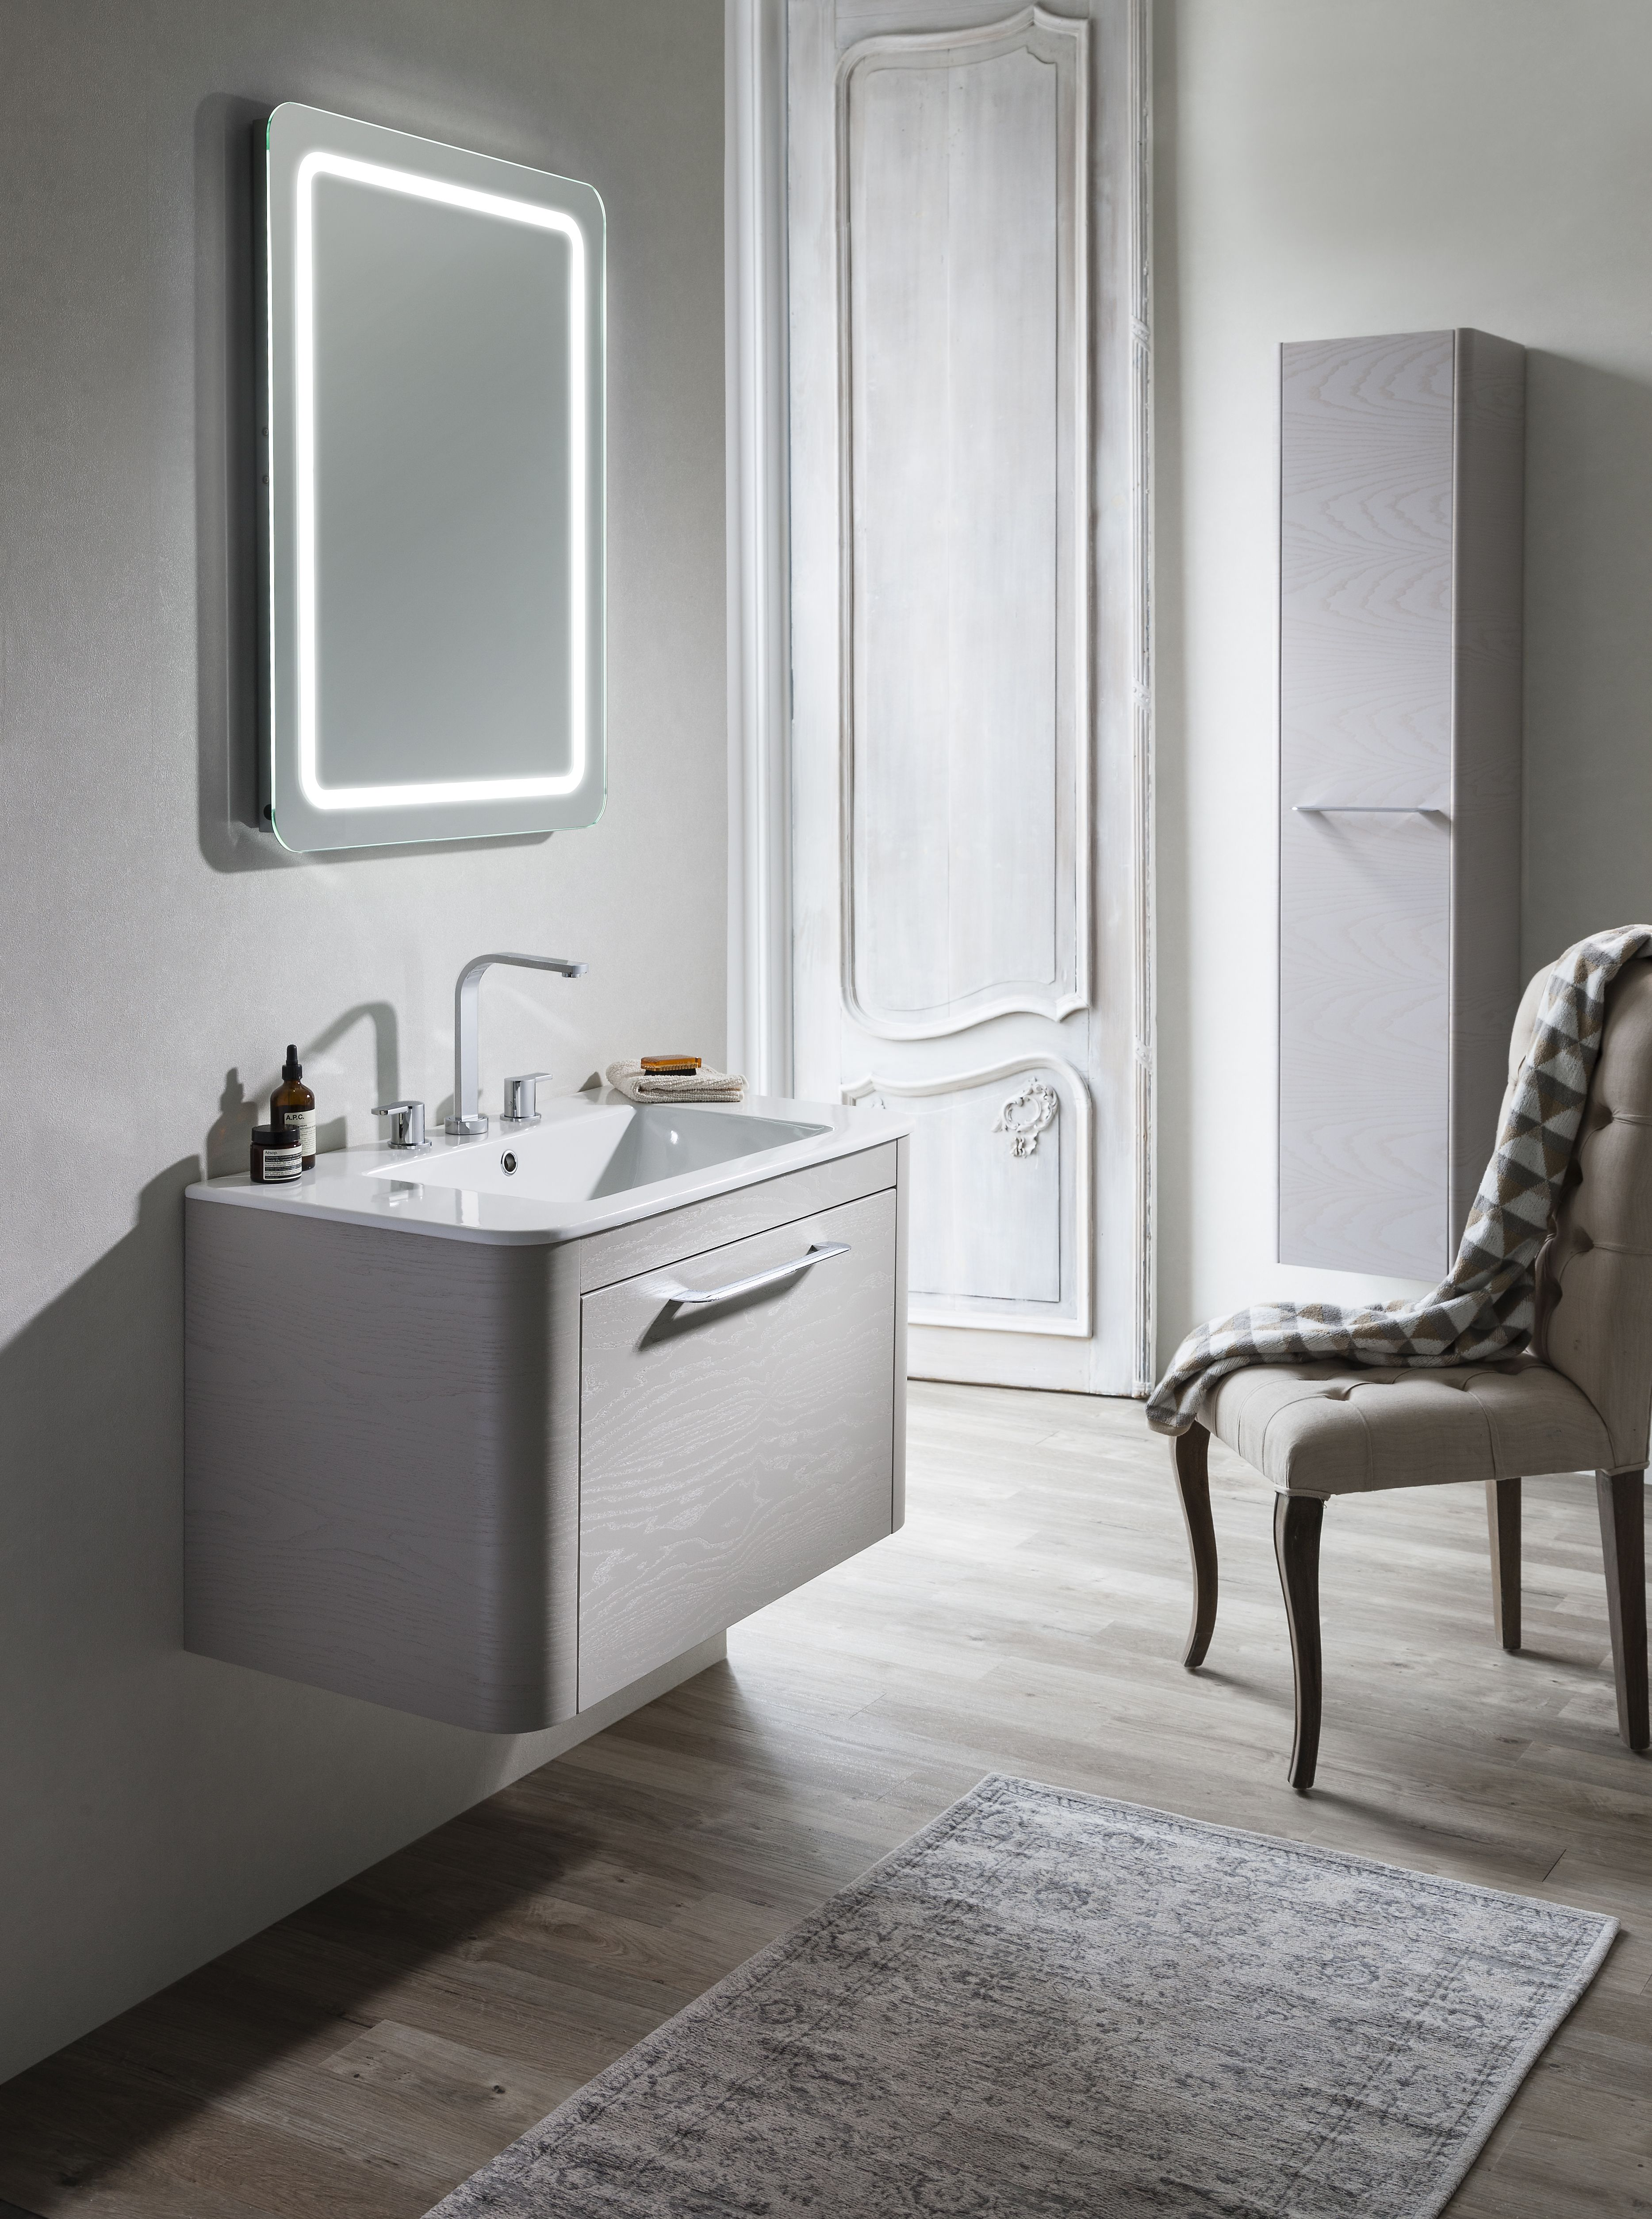 Generous storage facilities make this range ideal for bathrooms with limited space - Celeste 80 Unit & Ceramic Basin in Pebble from Bauhaus. http://www.crosswater.co.uk/product/furniture-furniture-collections-browse-by-range-celeste/celeste-80-unit-and-ceramic-basin-celeste80-unit-ceramic/